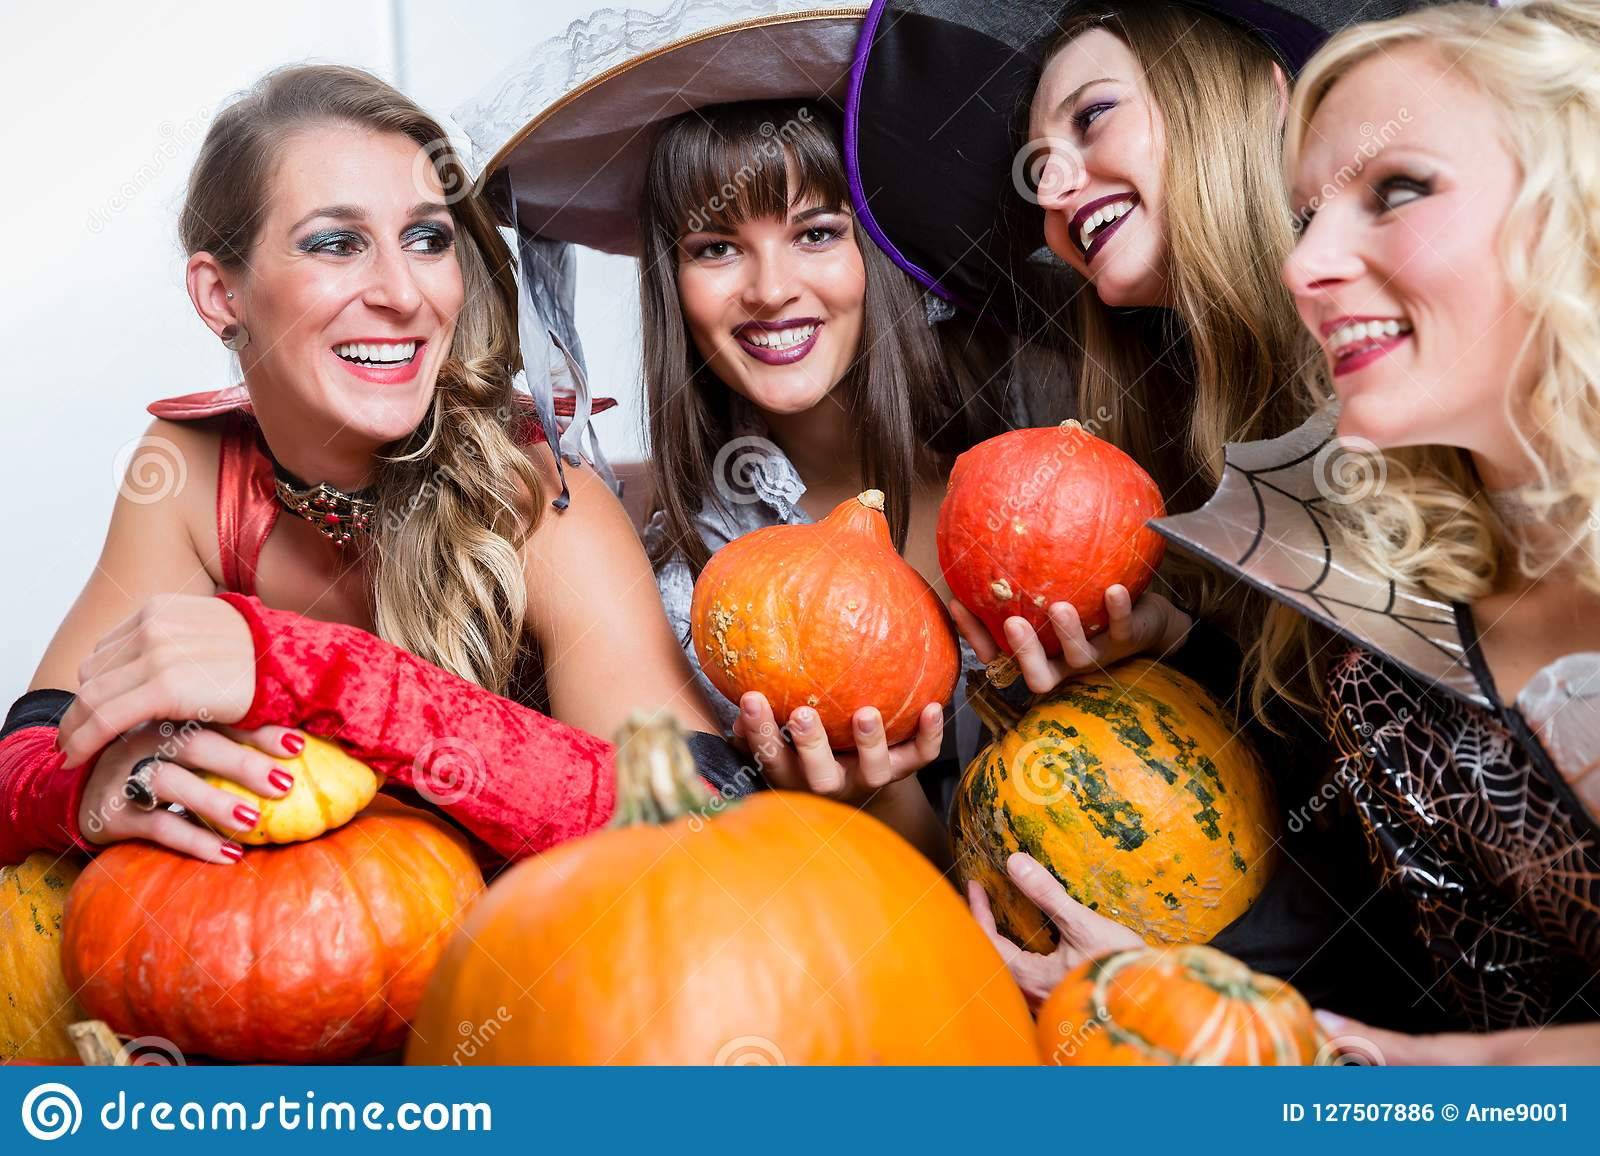 Four beautiful women acting as witches joining their malicious forces